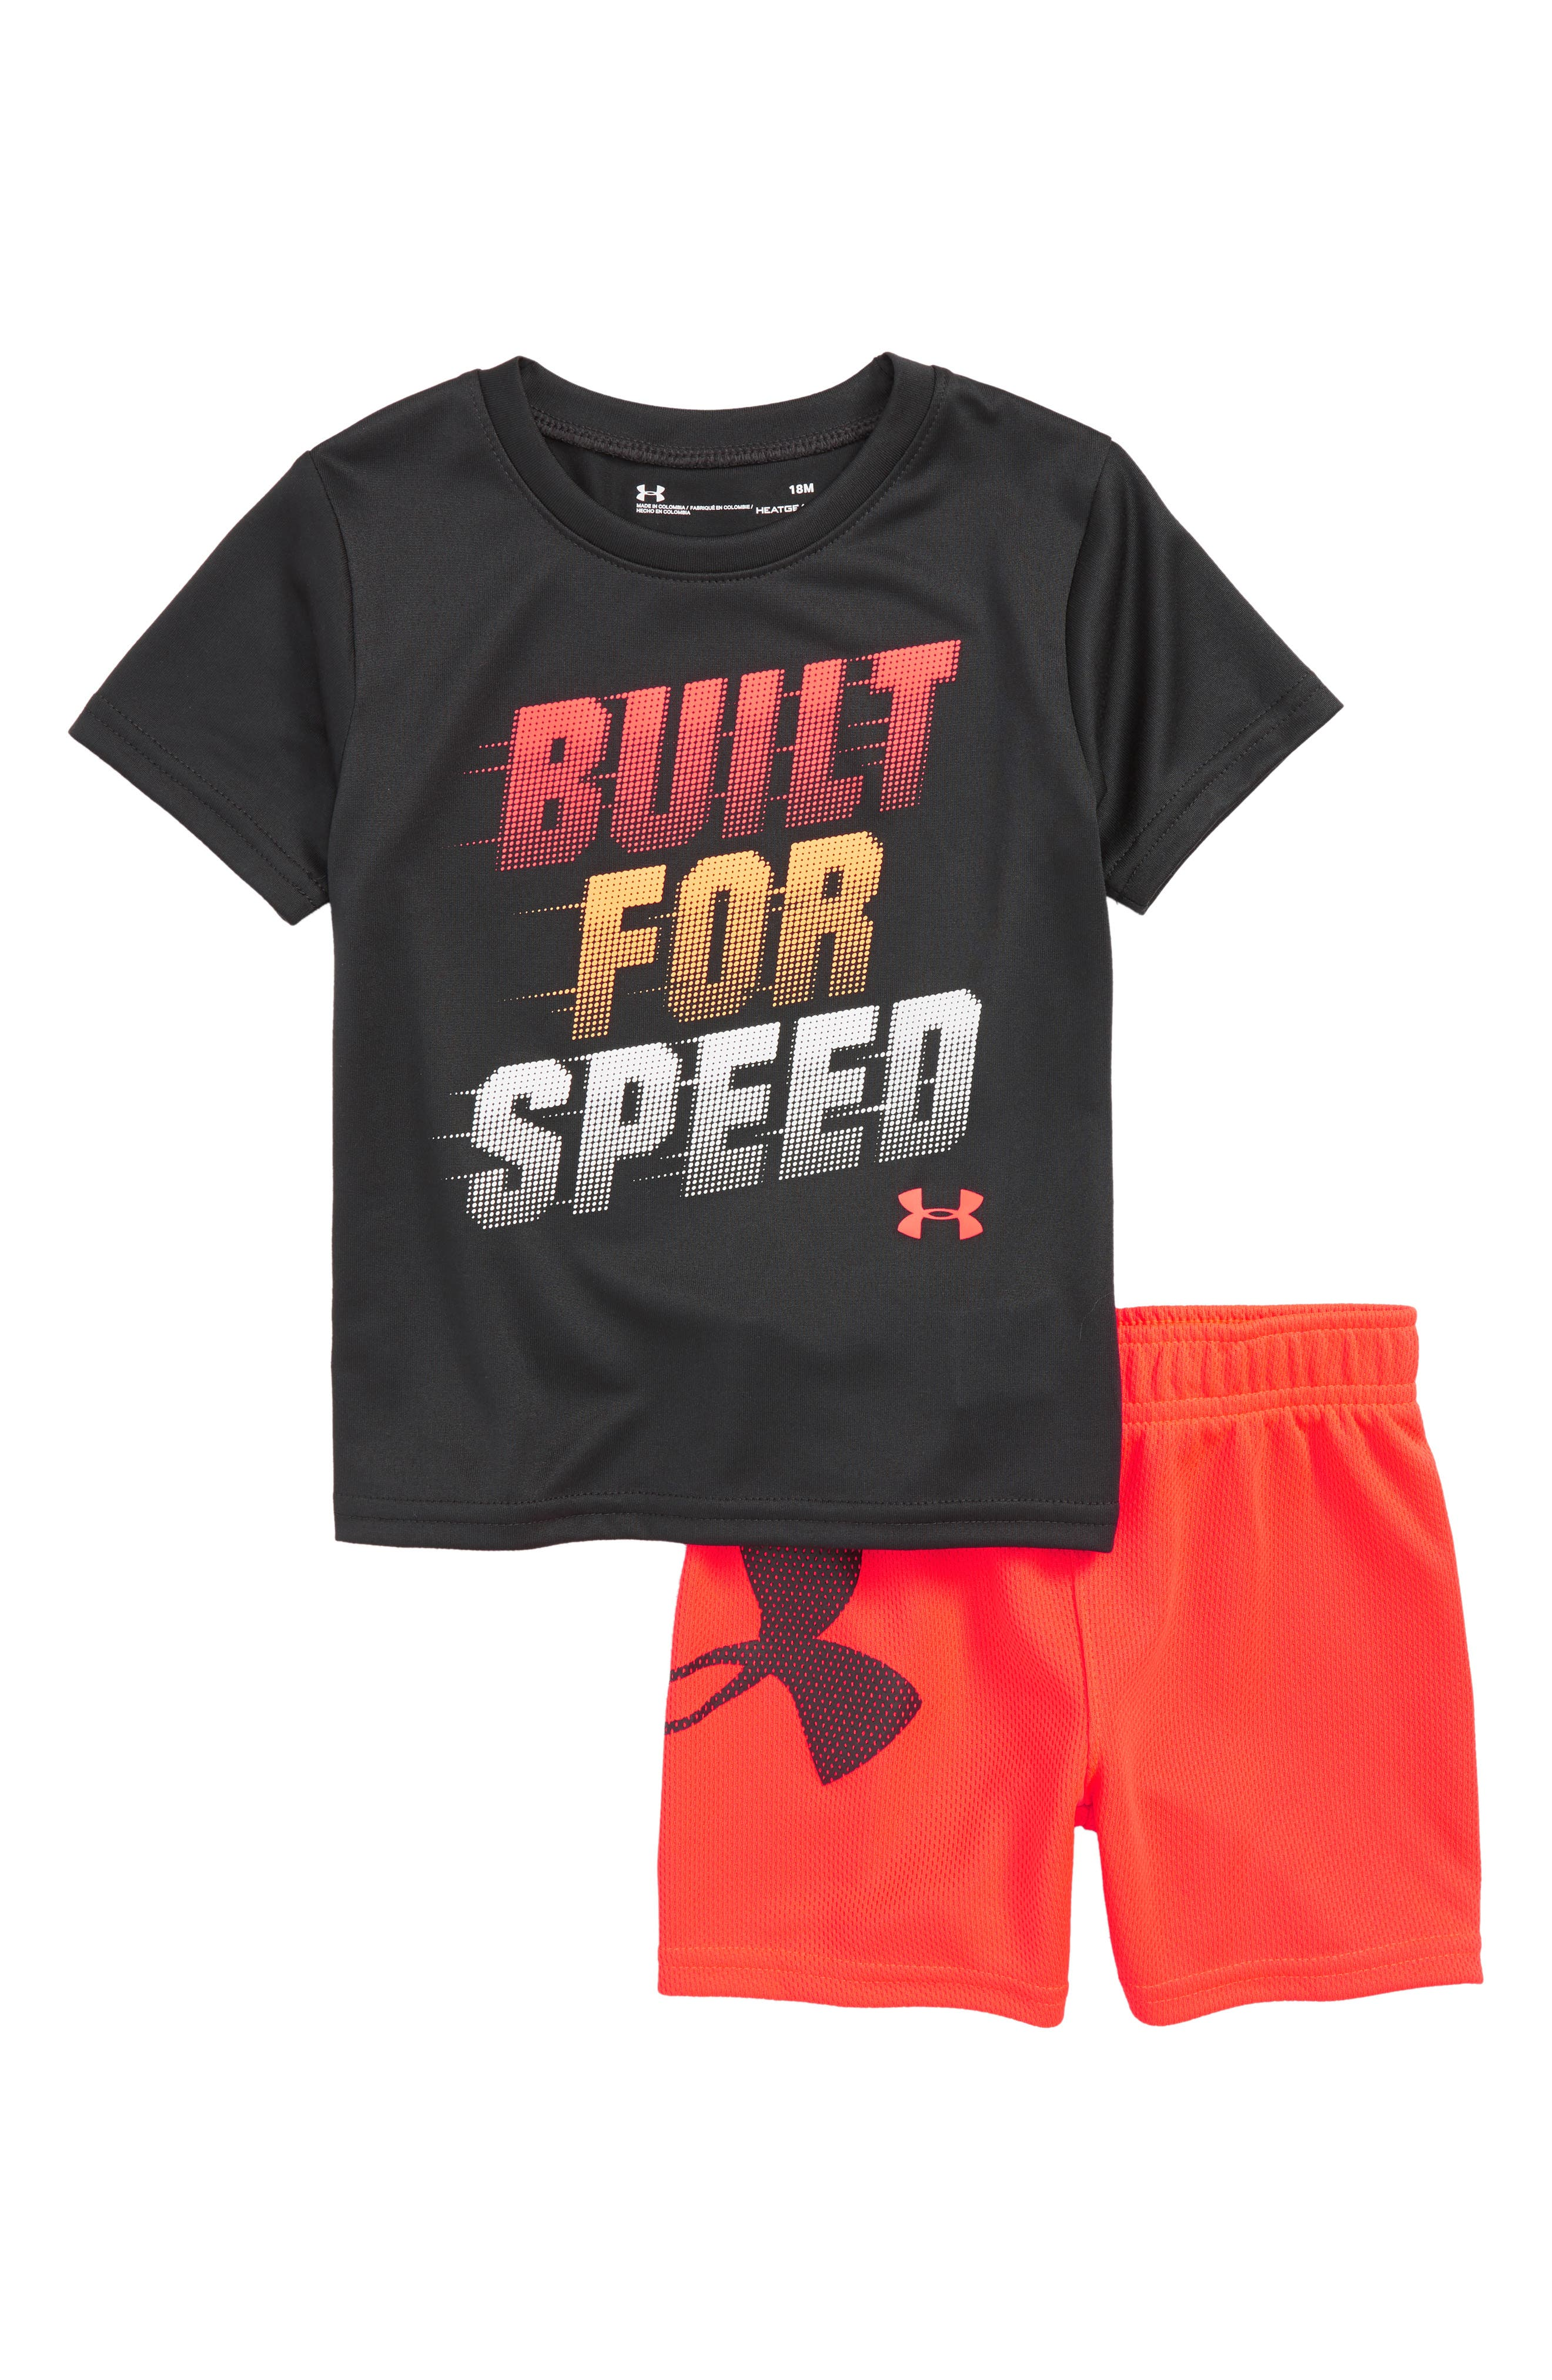 Built for Speed HeatGear<sup>®</sup> Shirt & Shorts Set,                             Main thumbnail 1, color,                             Anthracite